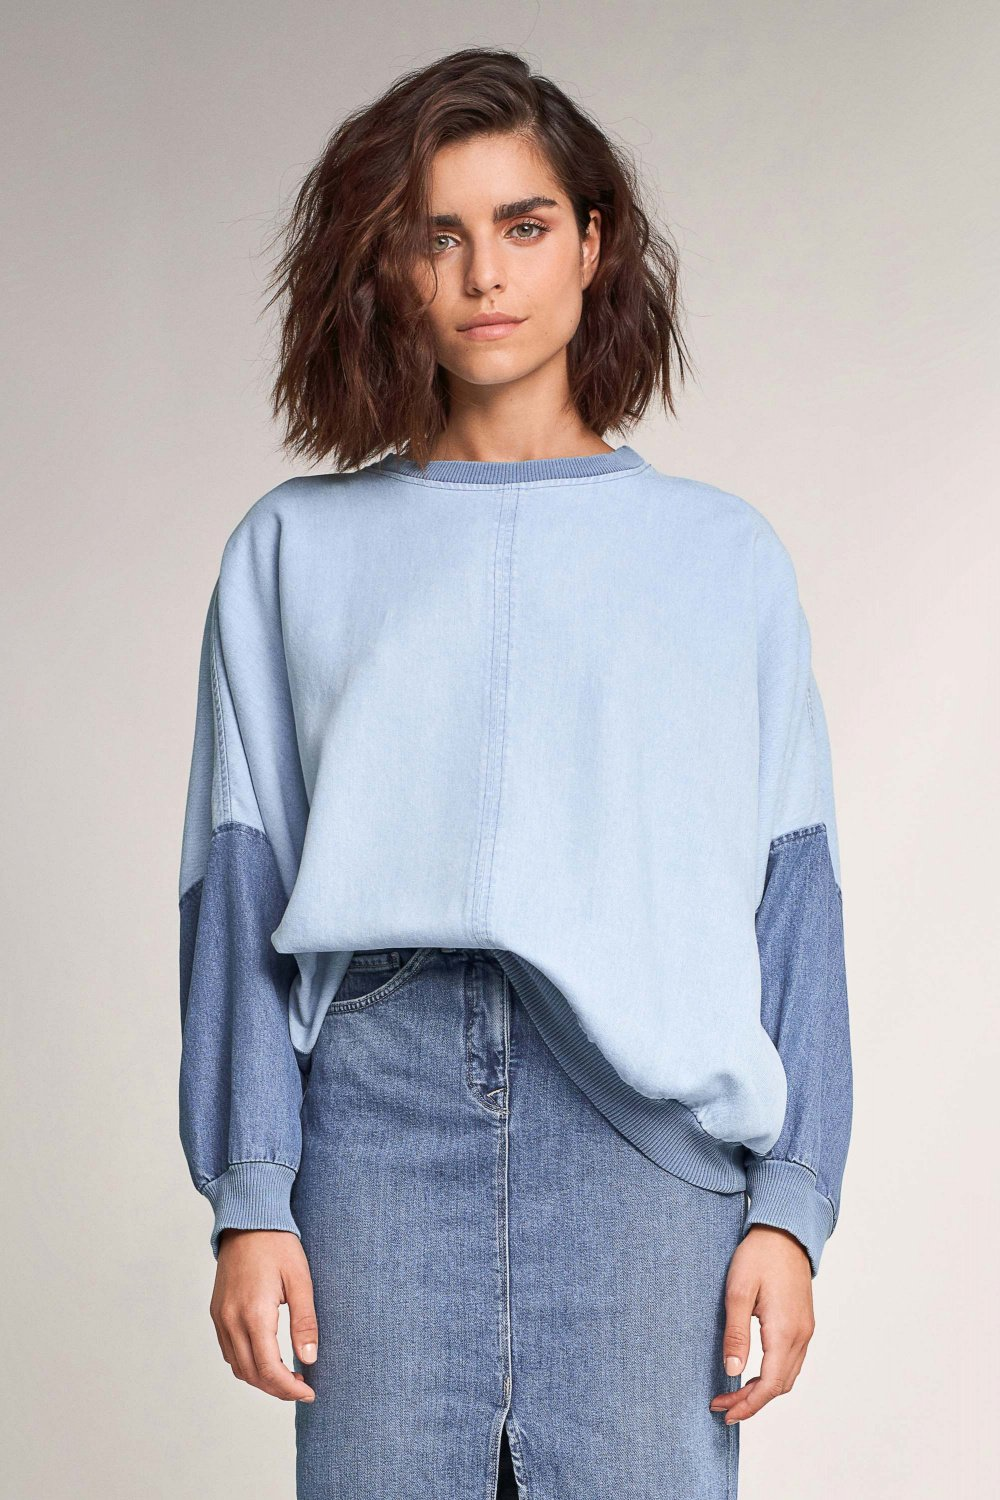 Premium Blue denim effect sweater - Salsa